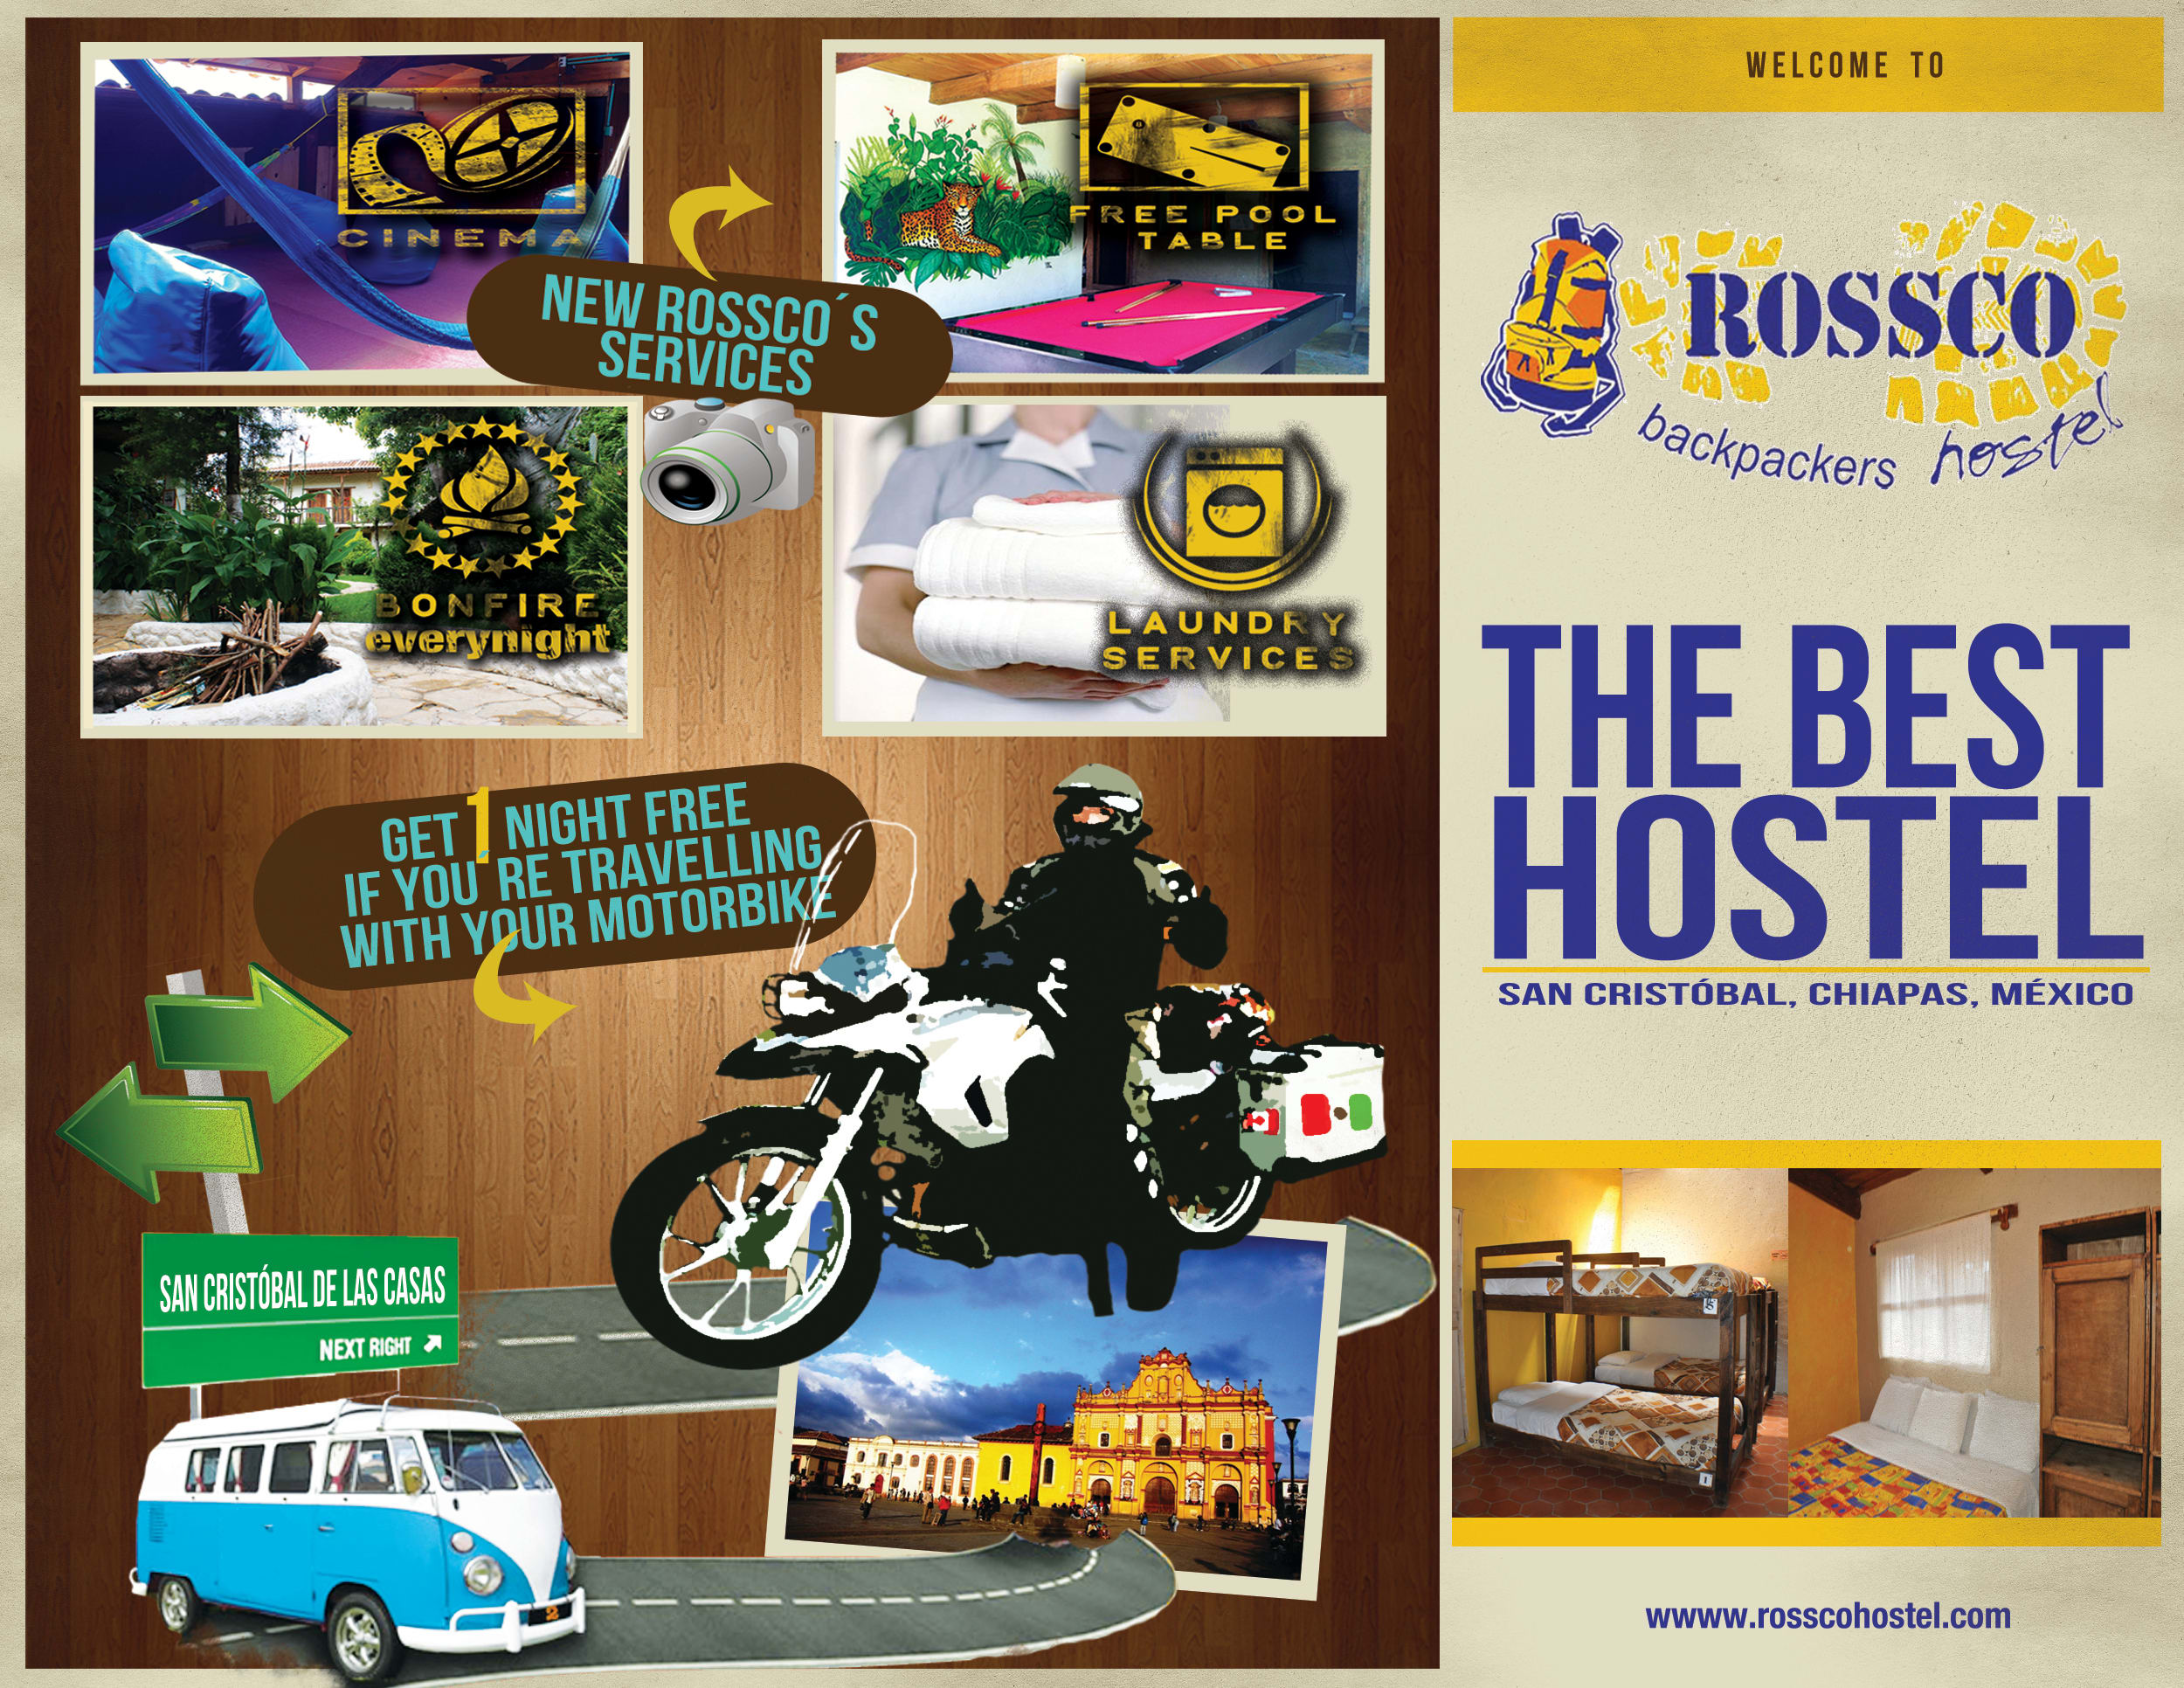 HOSTEL - Rossco Backpackers Hostel